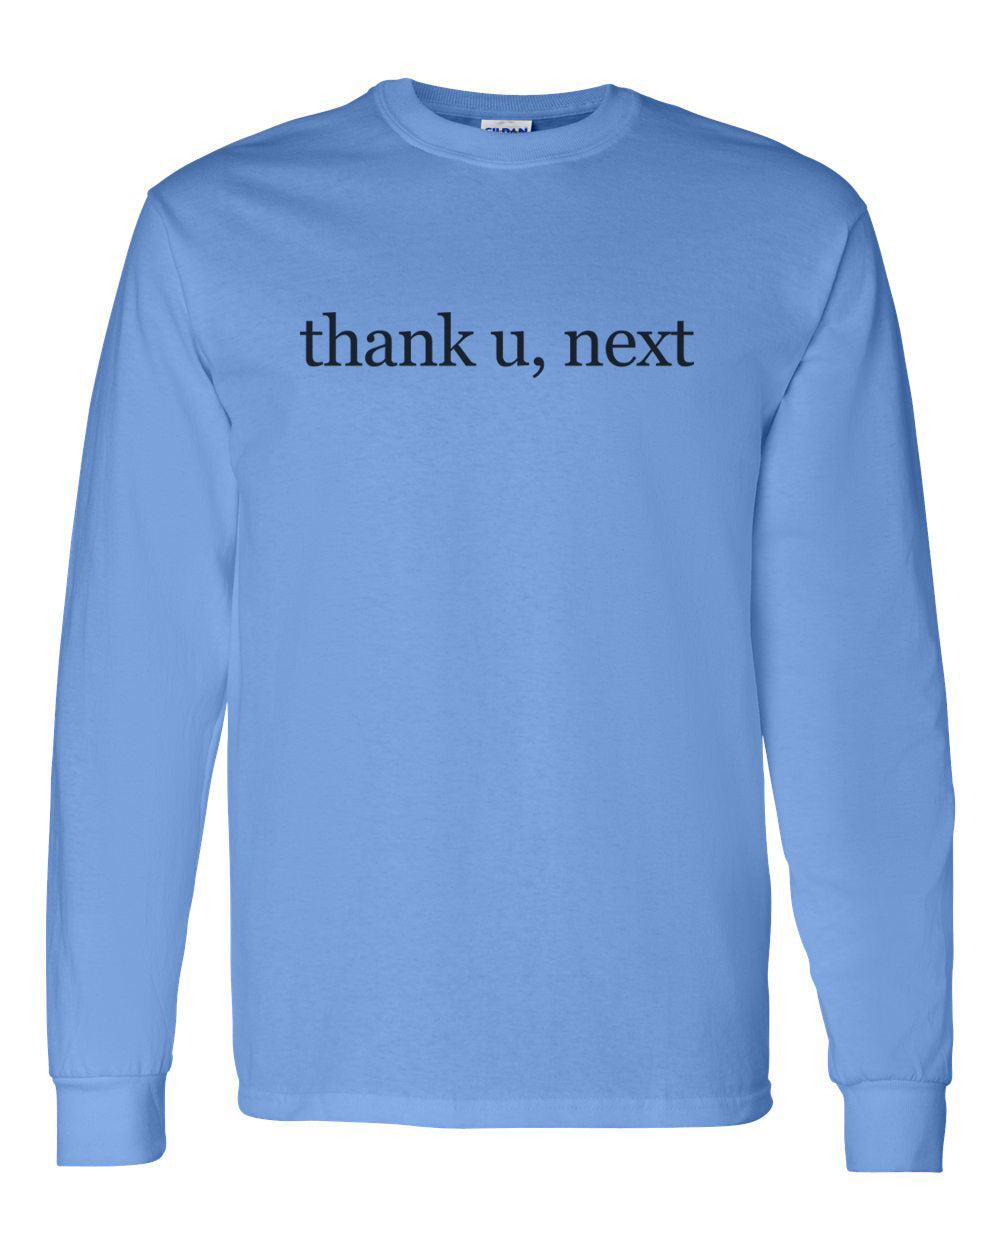 thank u, next  Unisex Long Sleeve T Shirt